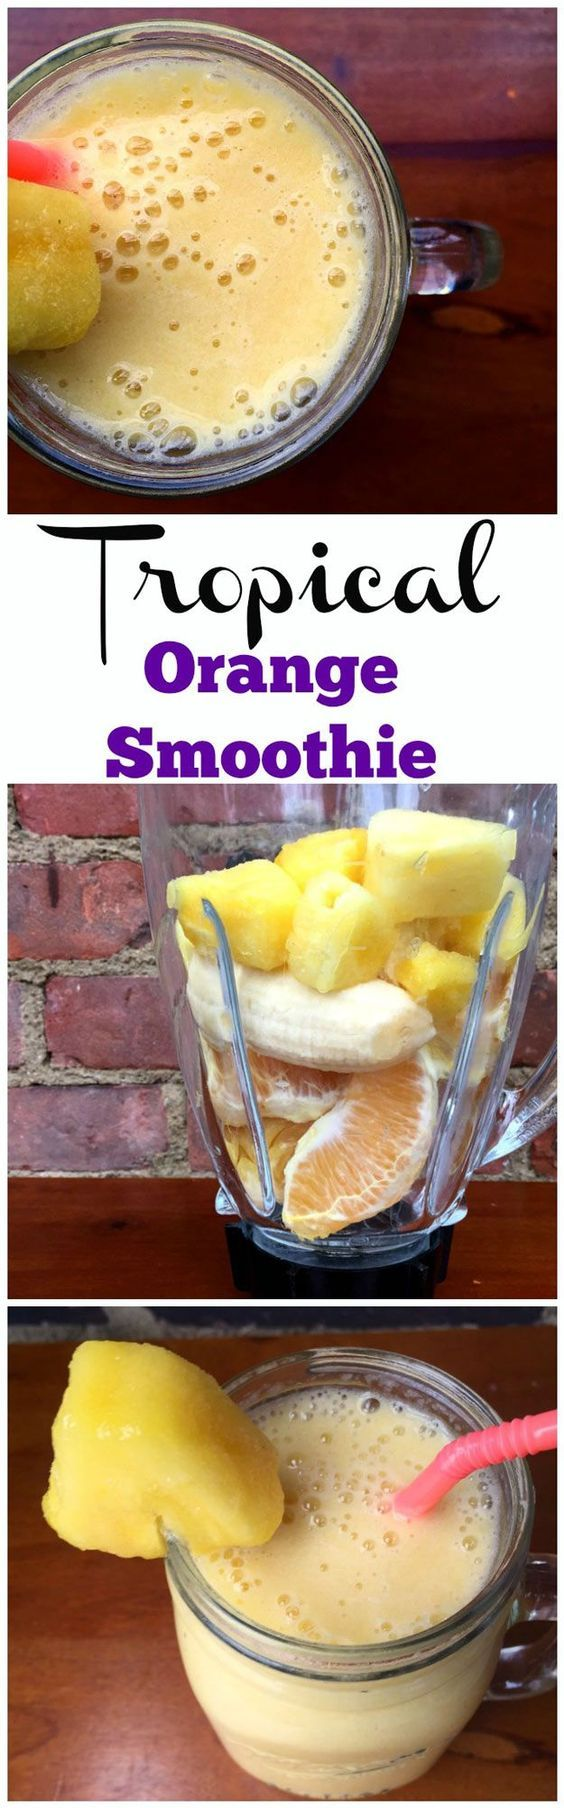 Healthy smoothie recipes and easy ideas perfect for breakfast, energy. Low calorie and high protein recipes for weightloss and to lose weight. Simple homemade recipe ideas that kids love.   Easy Breezy Tropical Orange Smoothie   diyjoy.com/...